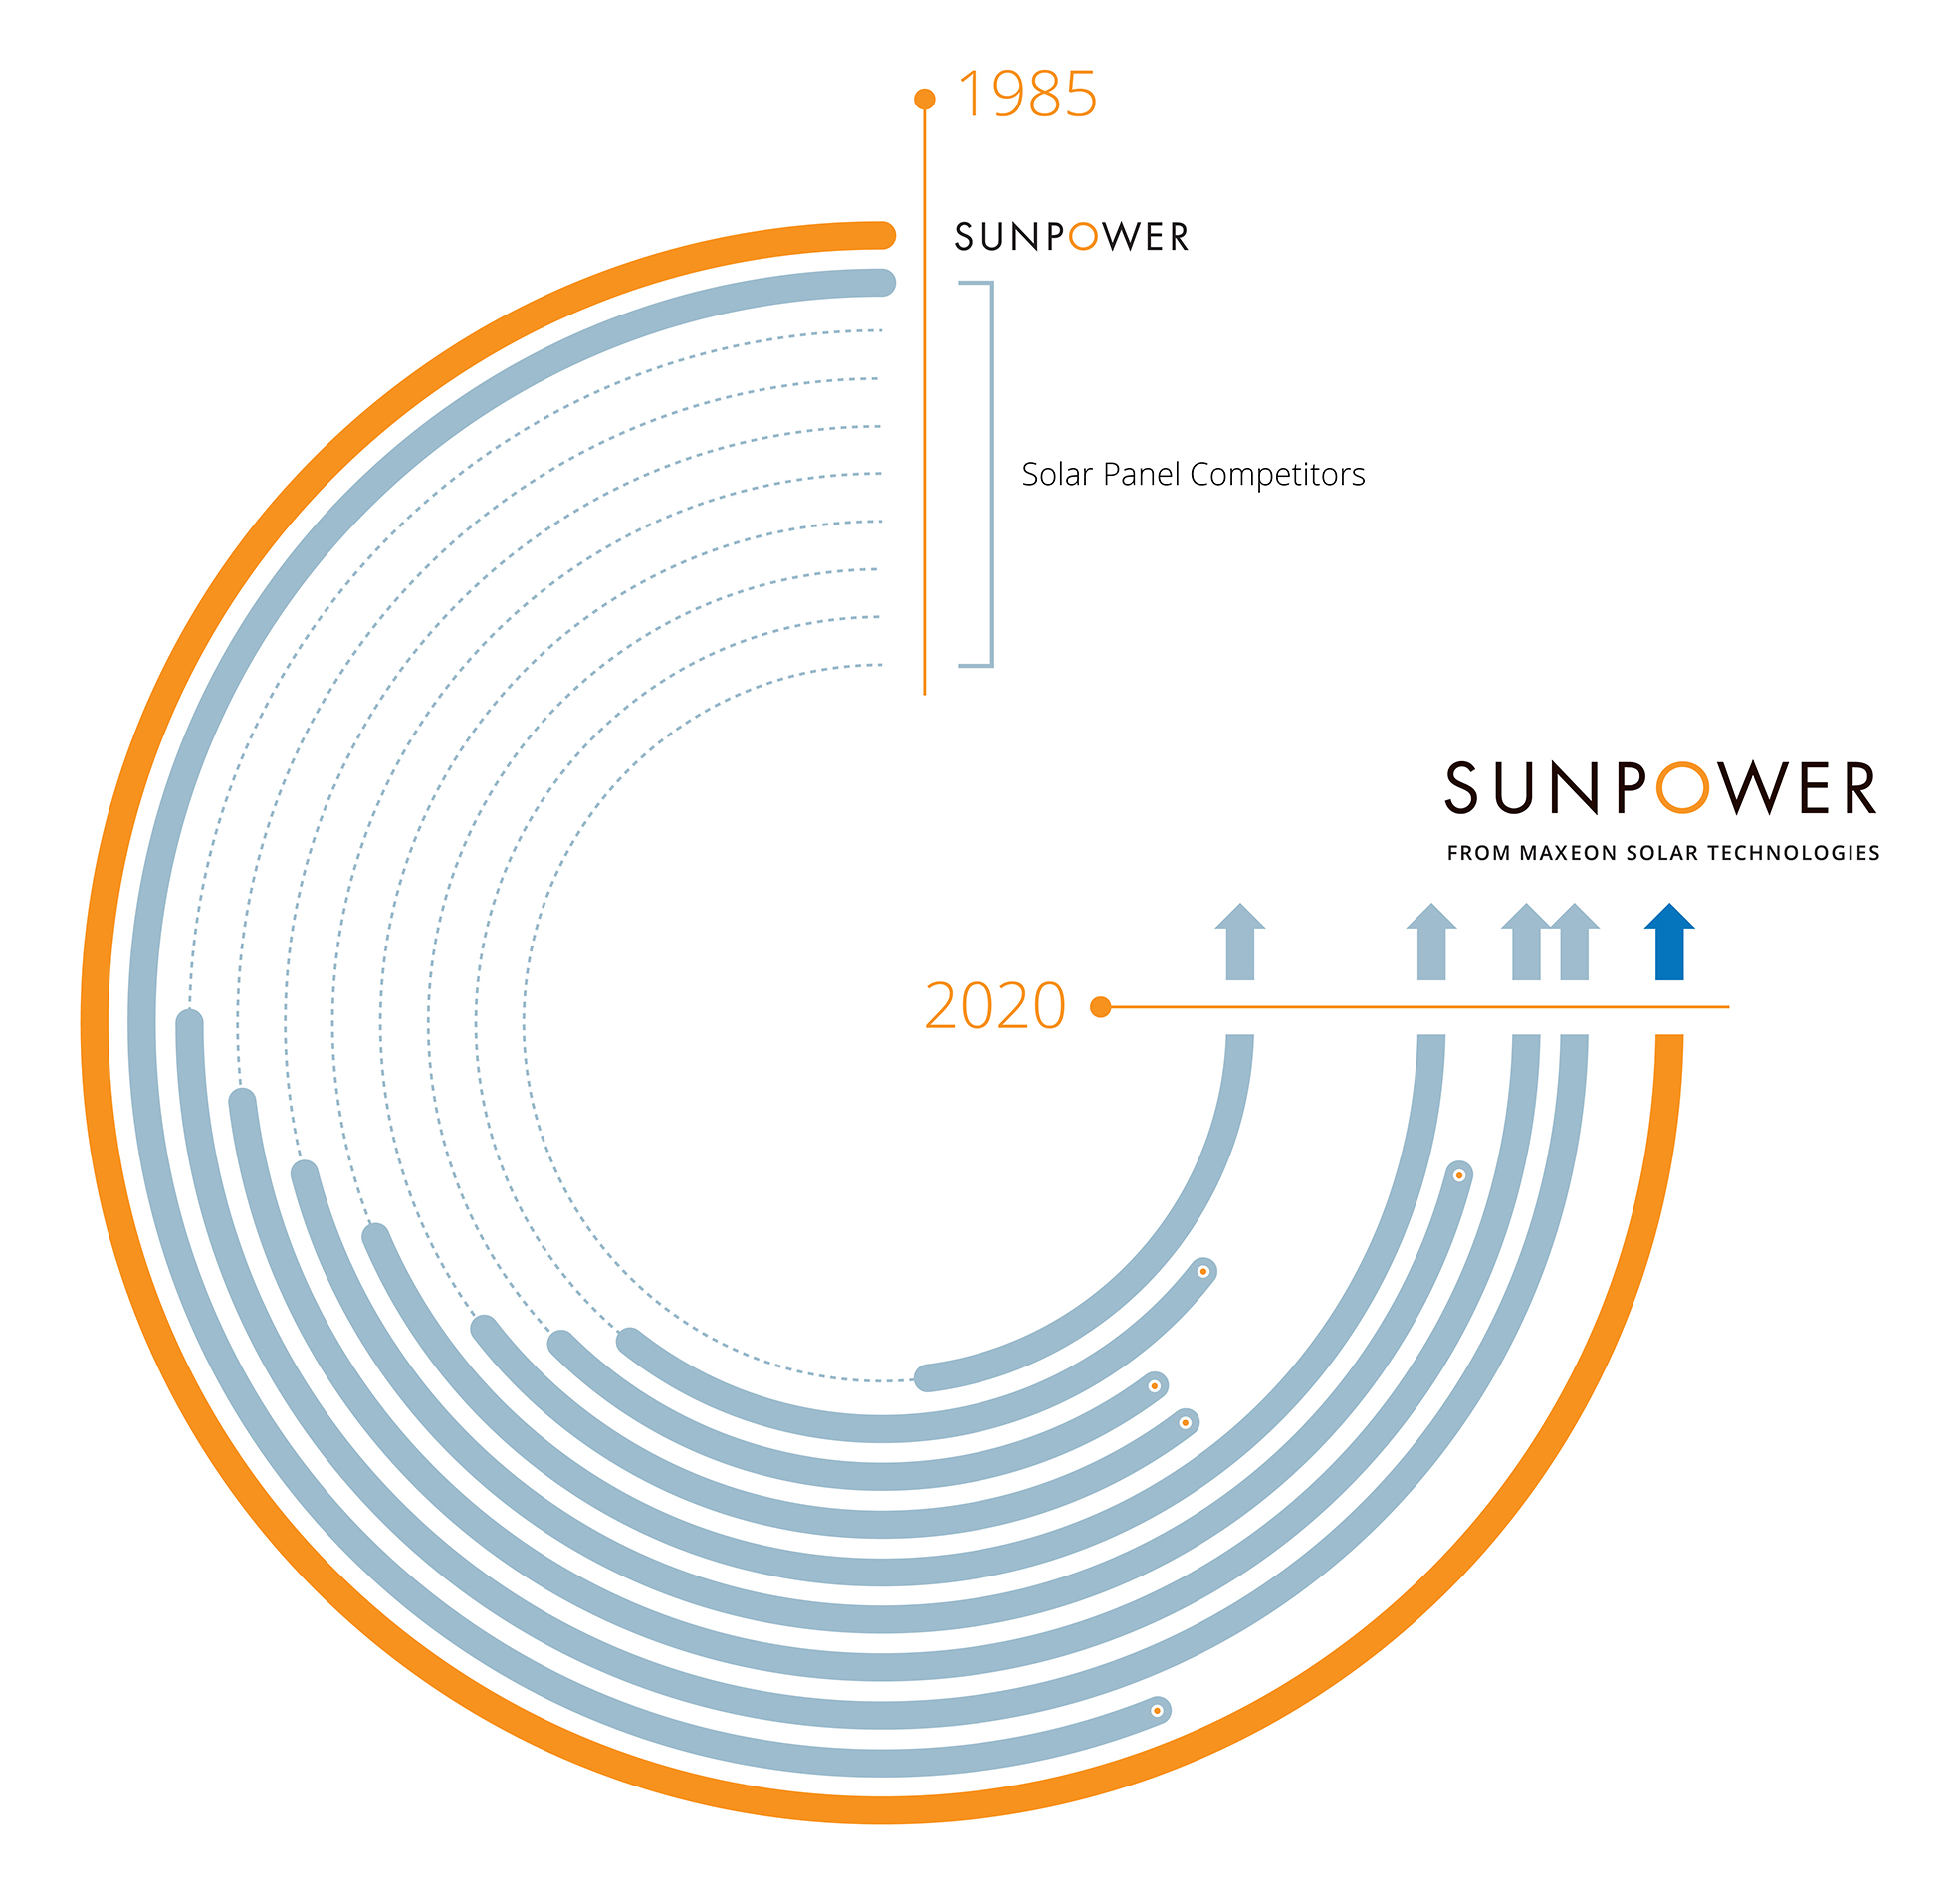 SunPower - from Maxeon Solar Technologies - graphic timeline against competitors